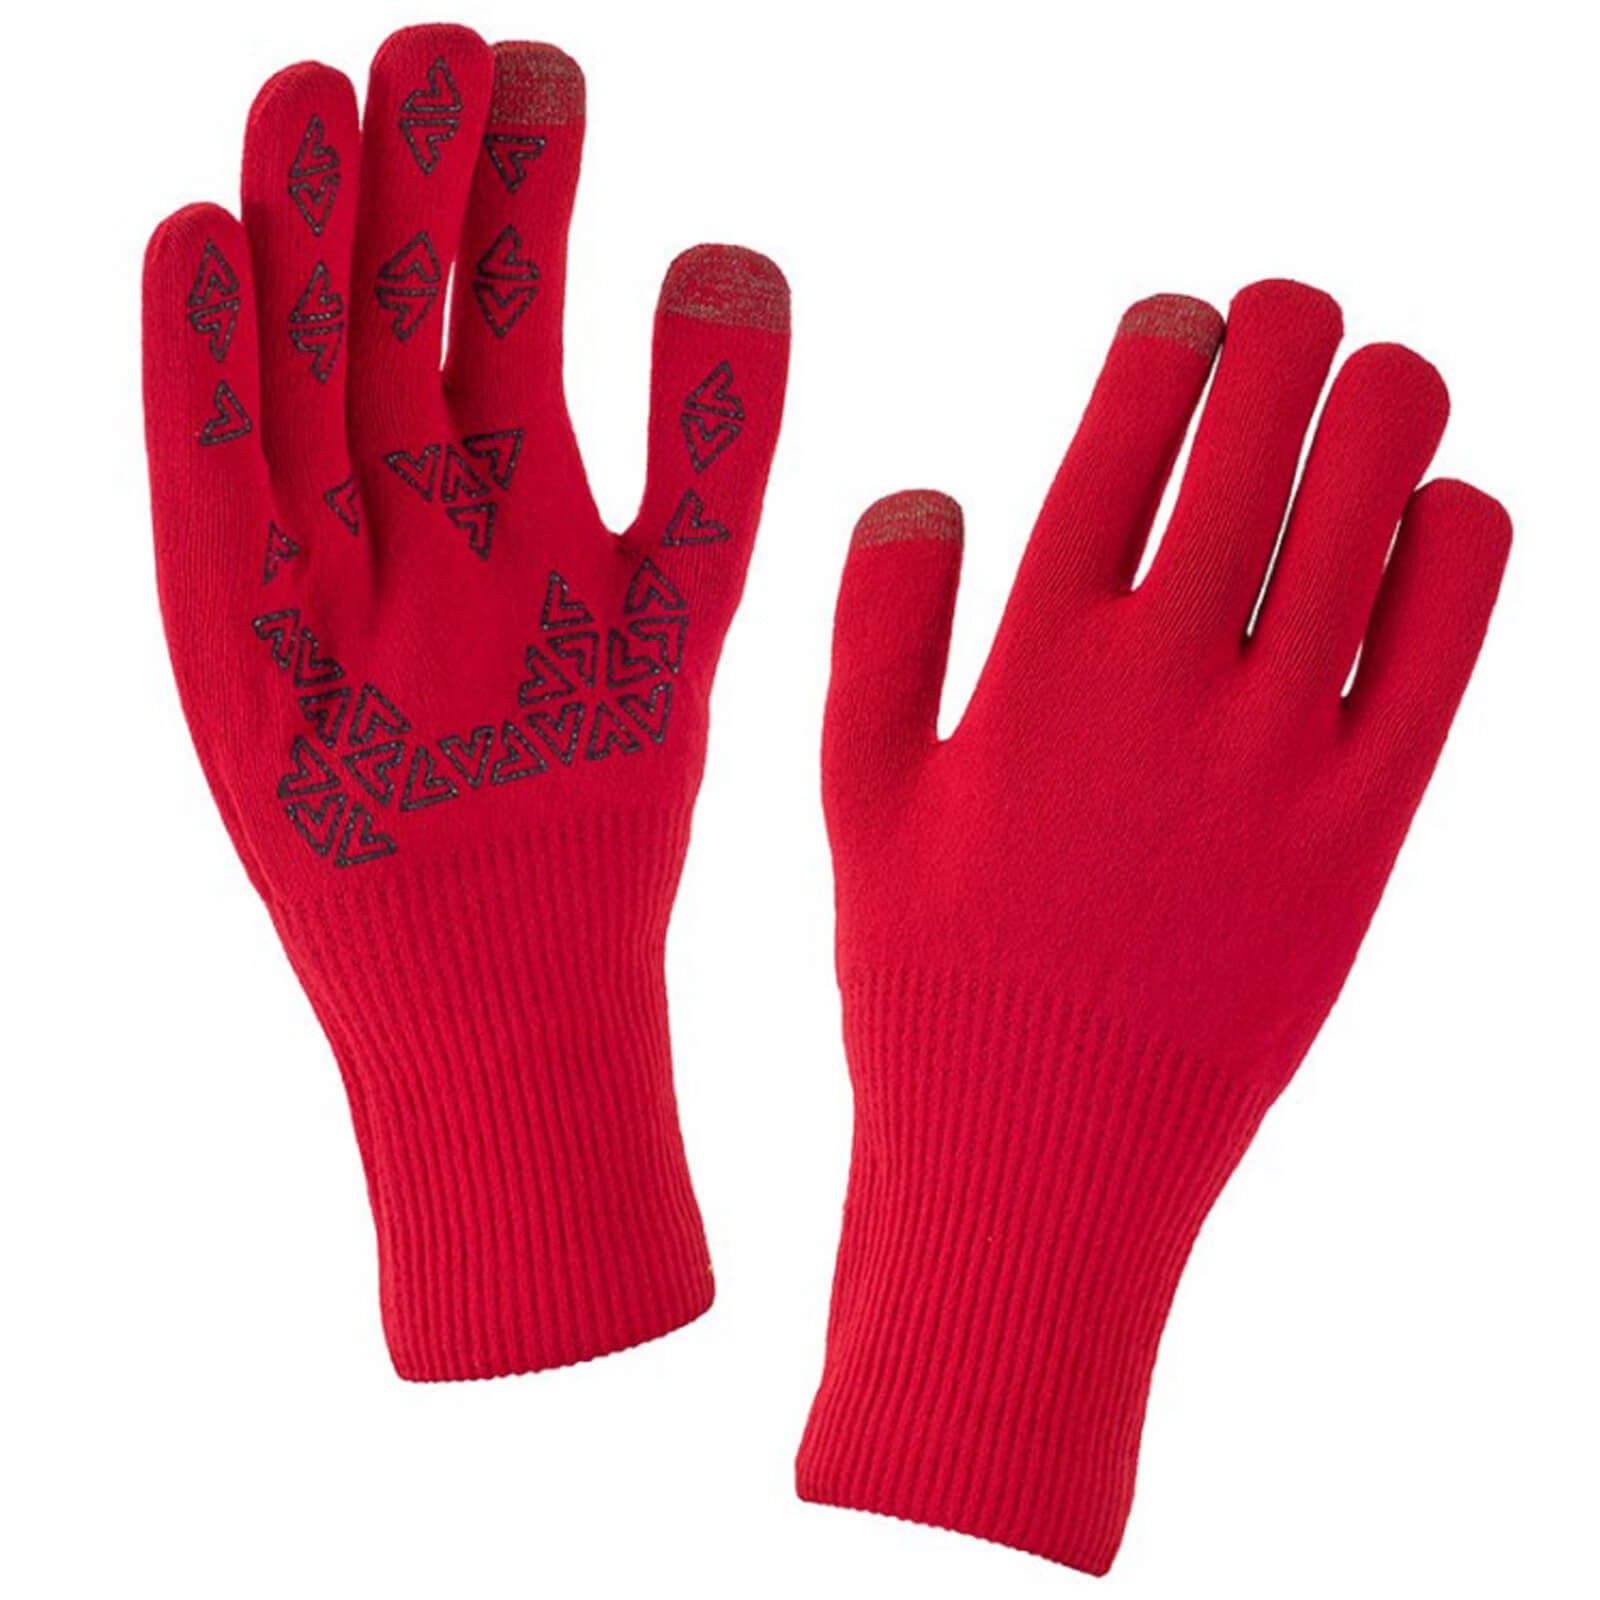 Sealskinz Ultra Grip Gloves - Red/Black